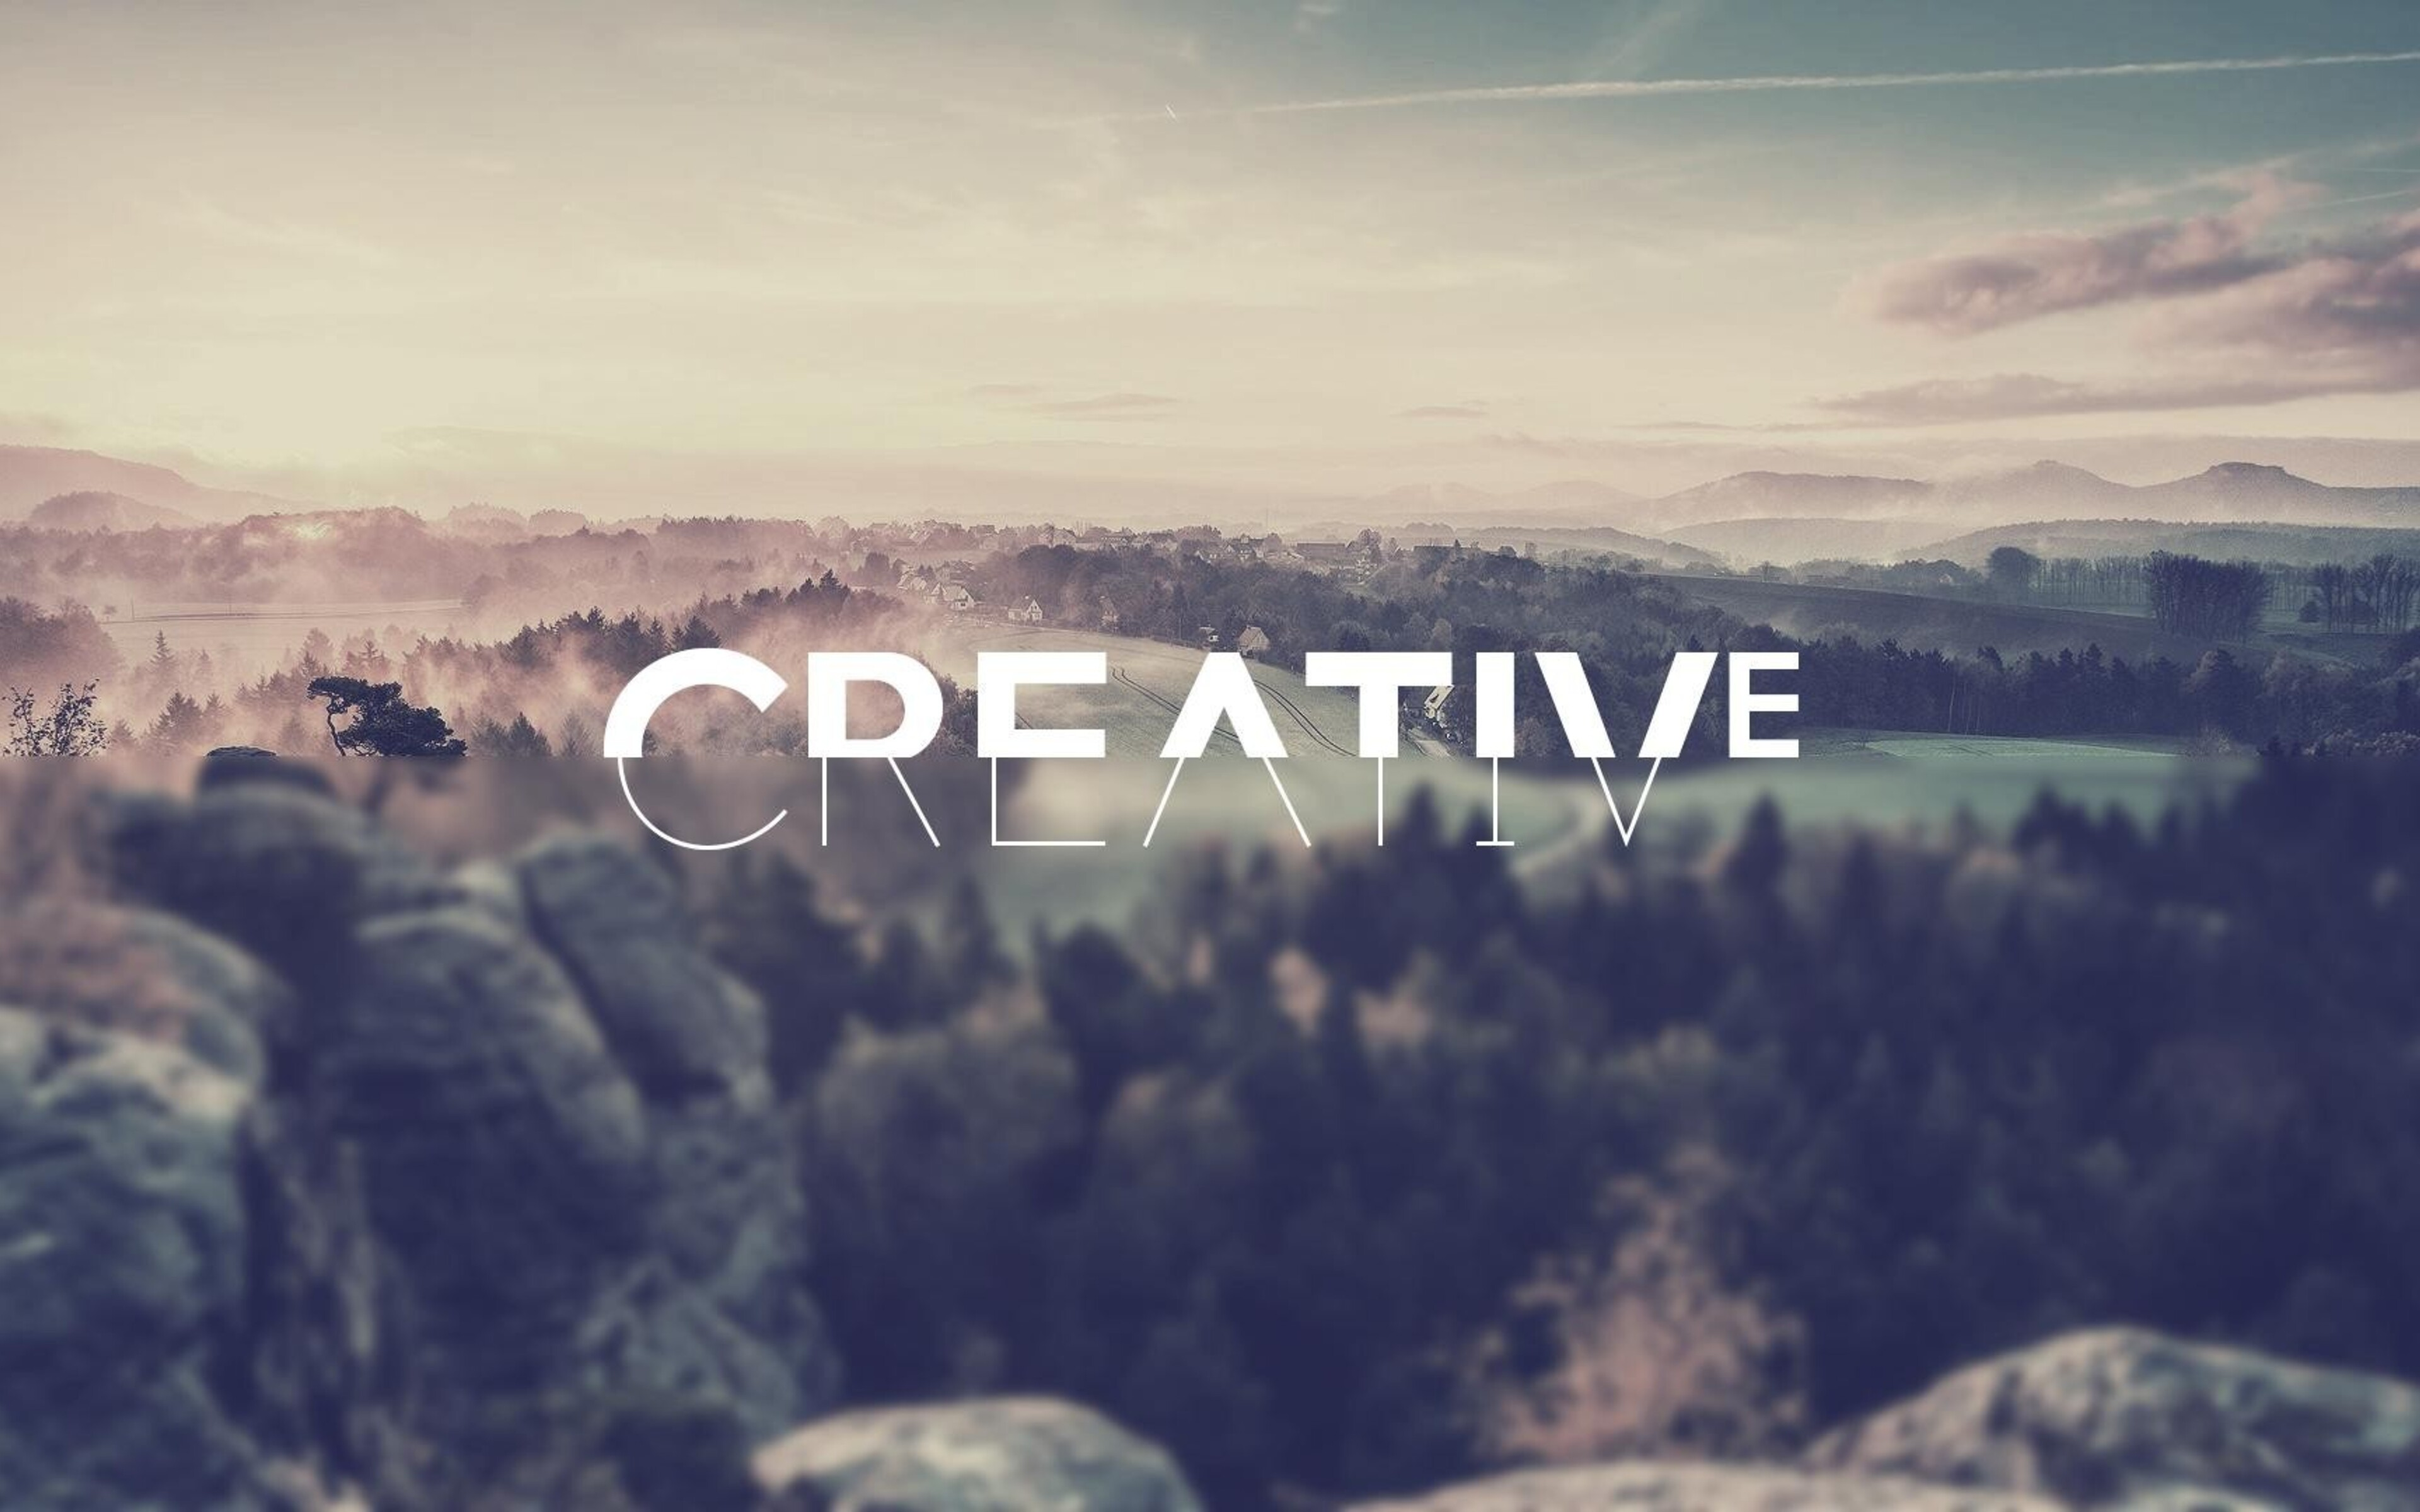 creative-typography-hd.jpg